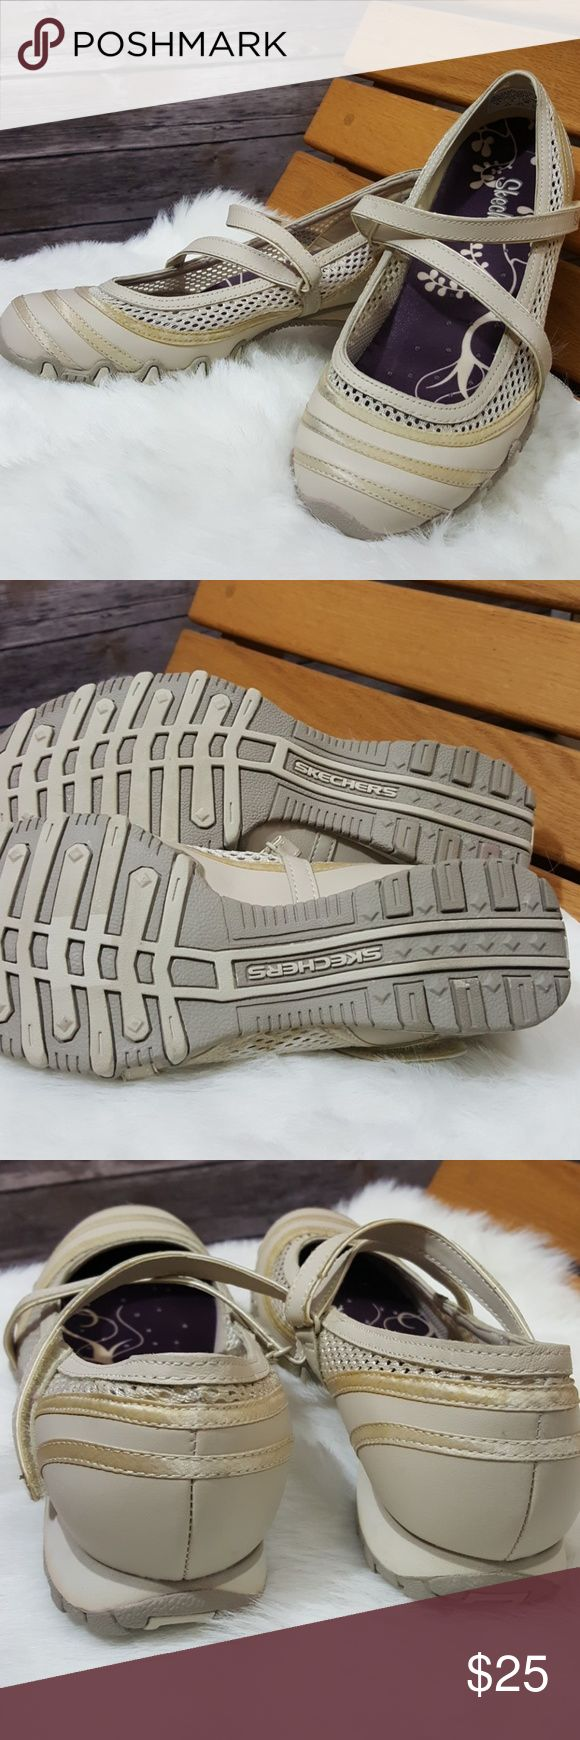 Skechers ballerina type walking shoes Skechers ballerina type walking shoes with velcro closure size 8 true true size has slight discoloration on  stripe see the last picture - other than that excellent condition - picture is true color Skechers Shoes